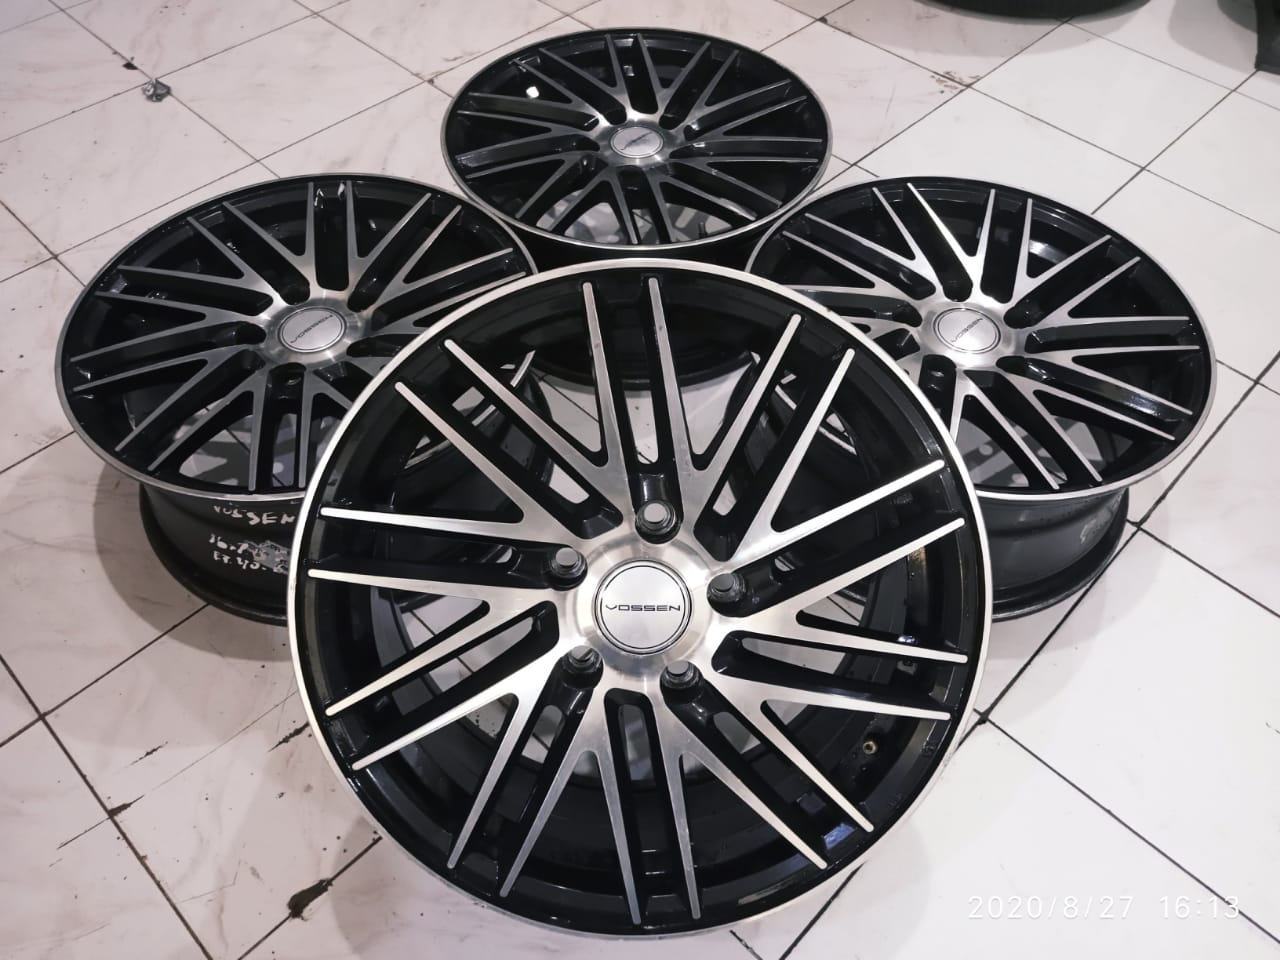 Velg VOSSEN Ring 16 Lebar 7 Pcd 5X114,3 Offset 40 Warna Black Polish